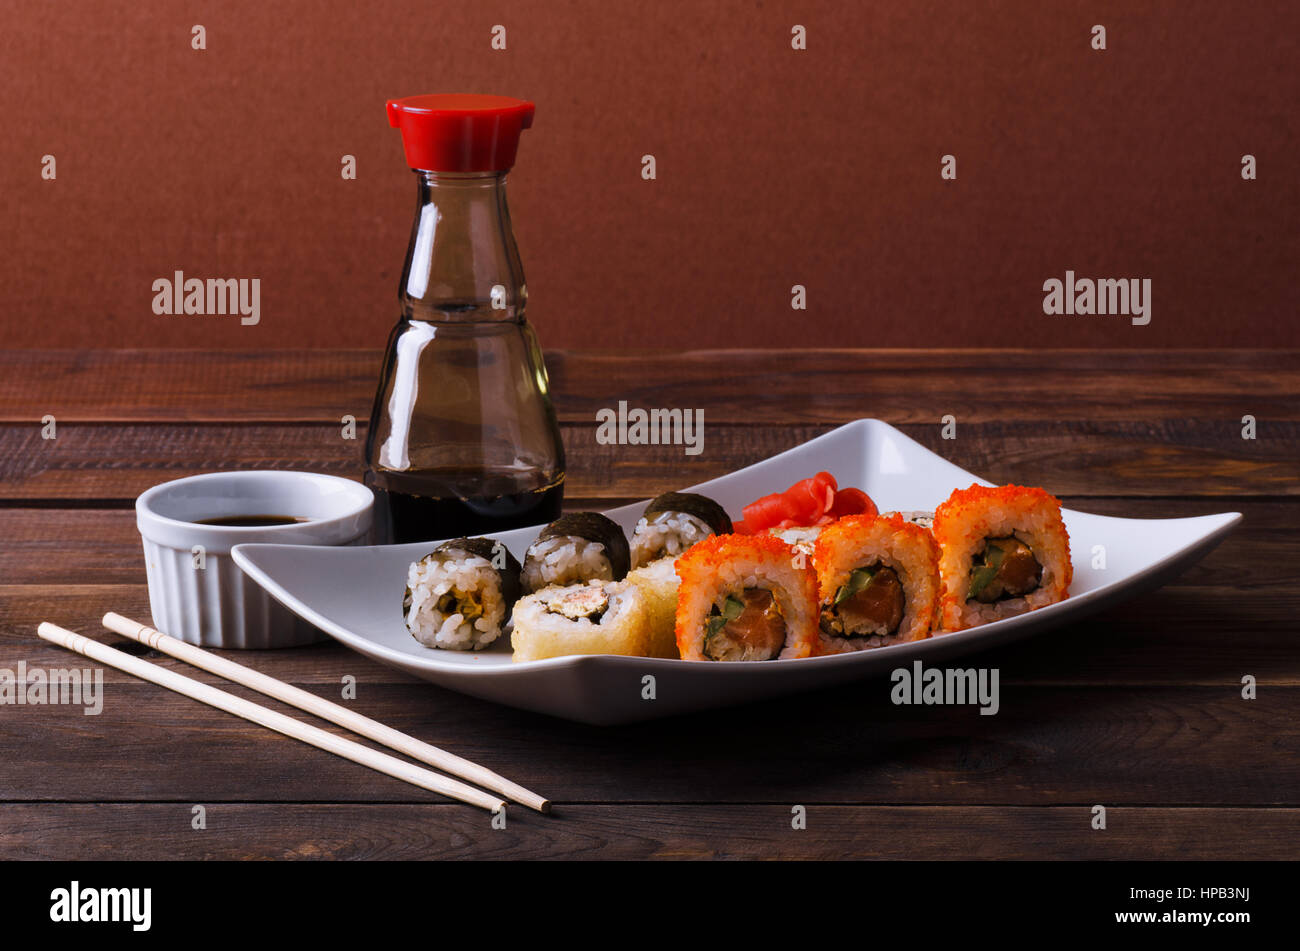 Sushi roll on a plate with soy sauce and chopsticks - Stock Image